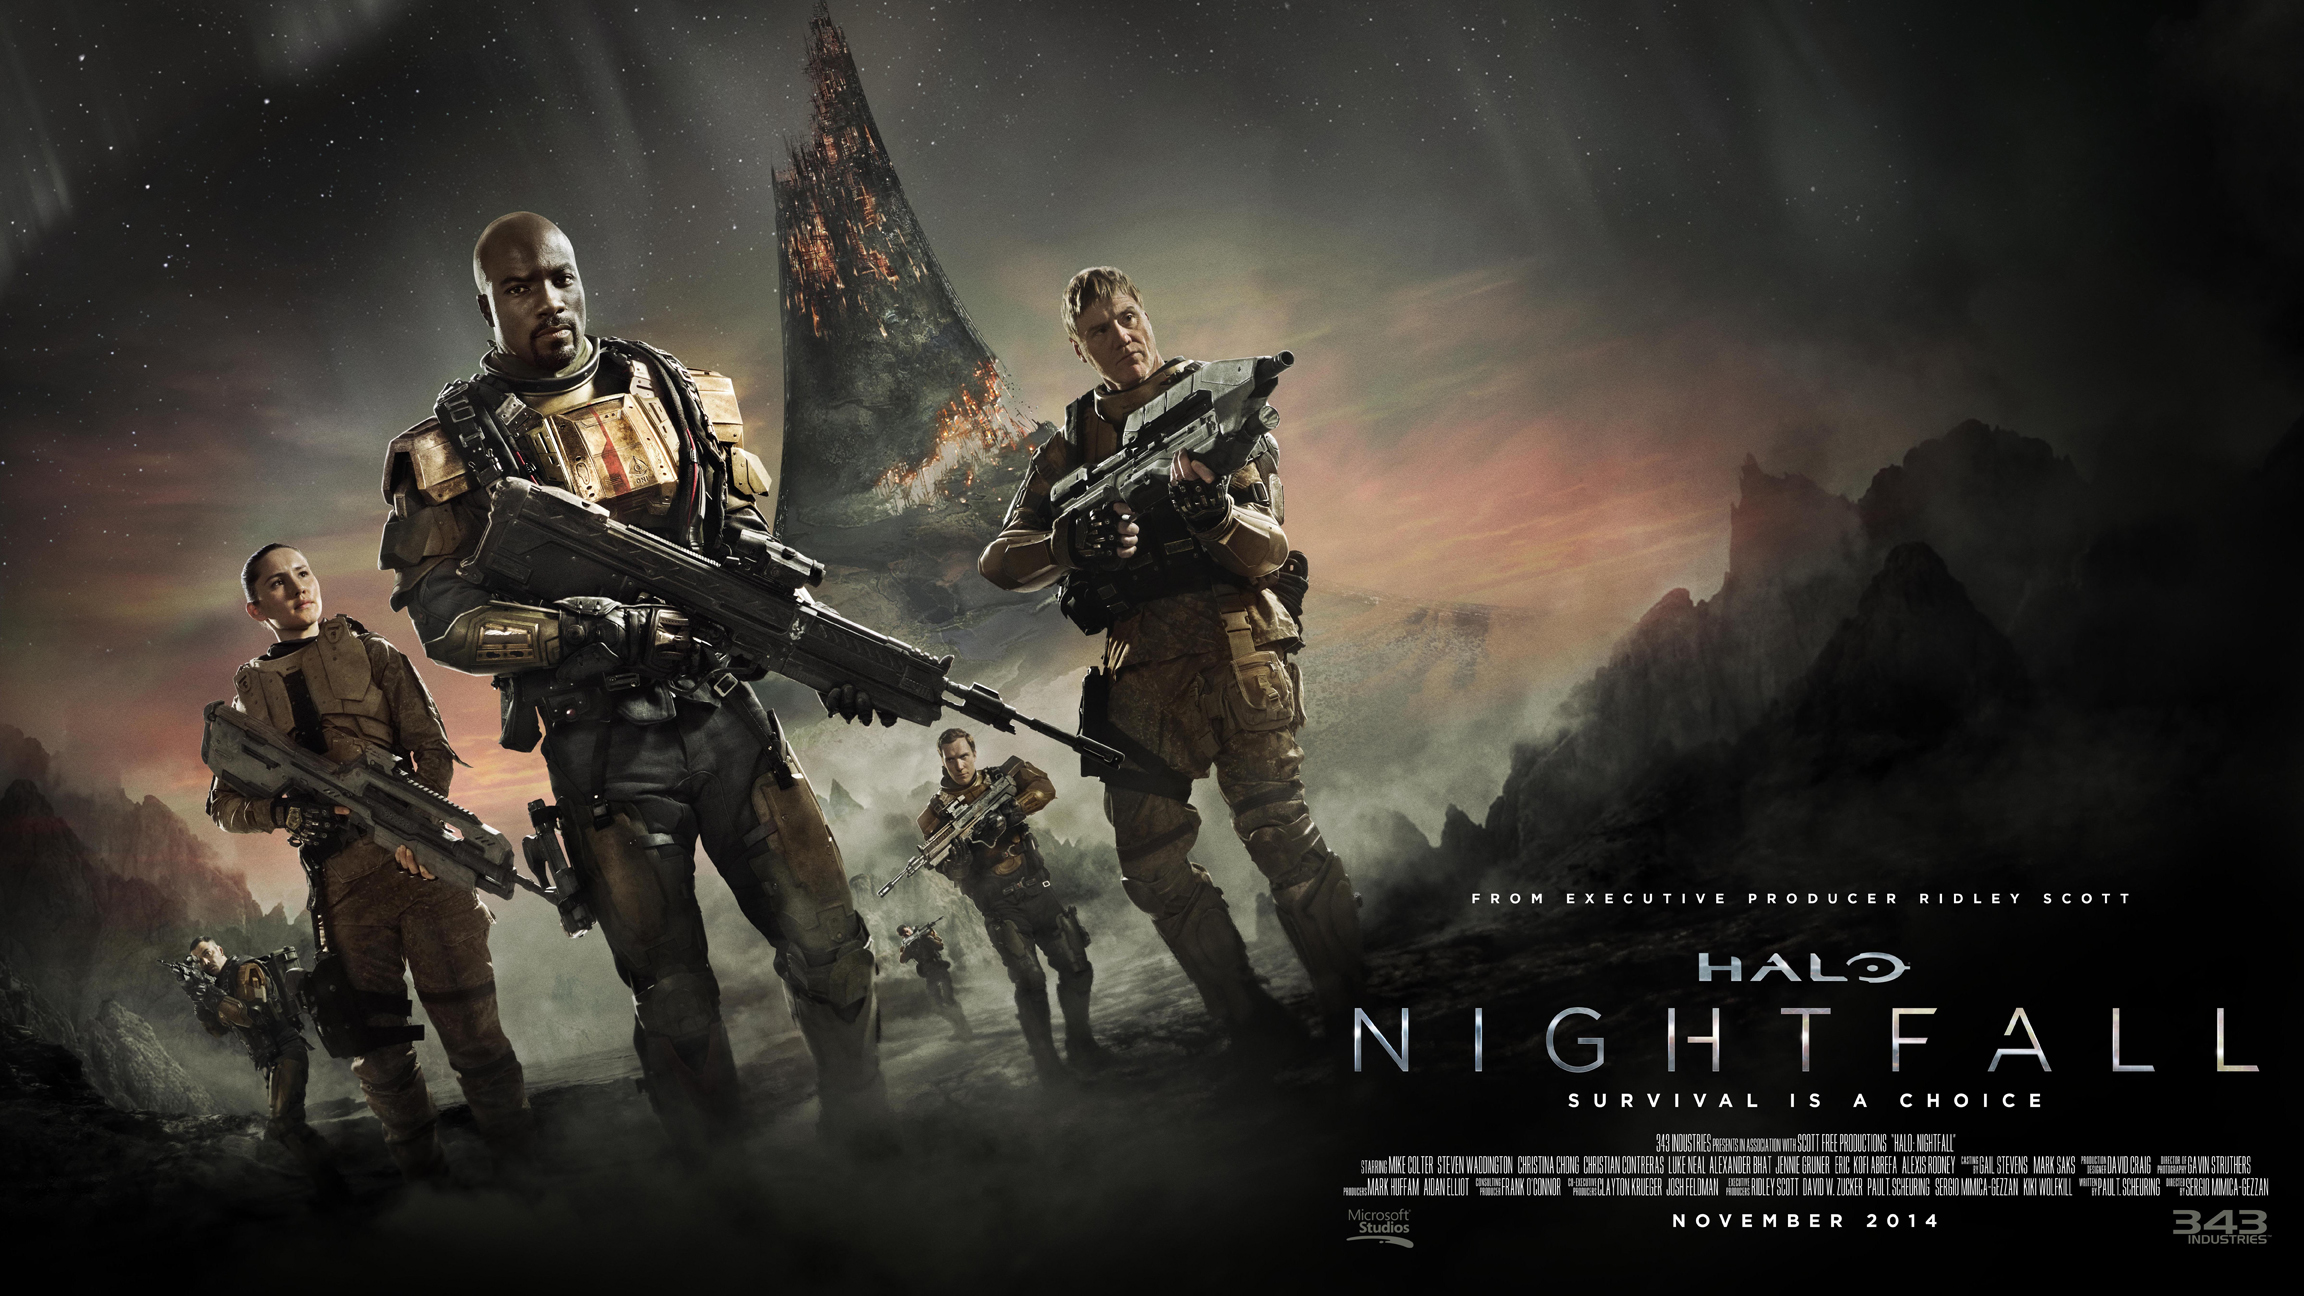 ... Release Date Announced :: Halo: Nightfall Trailer and Release Date